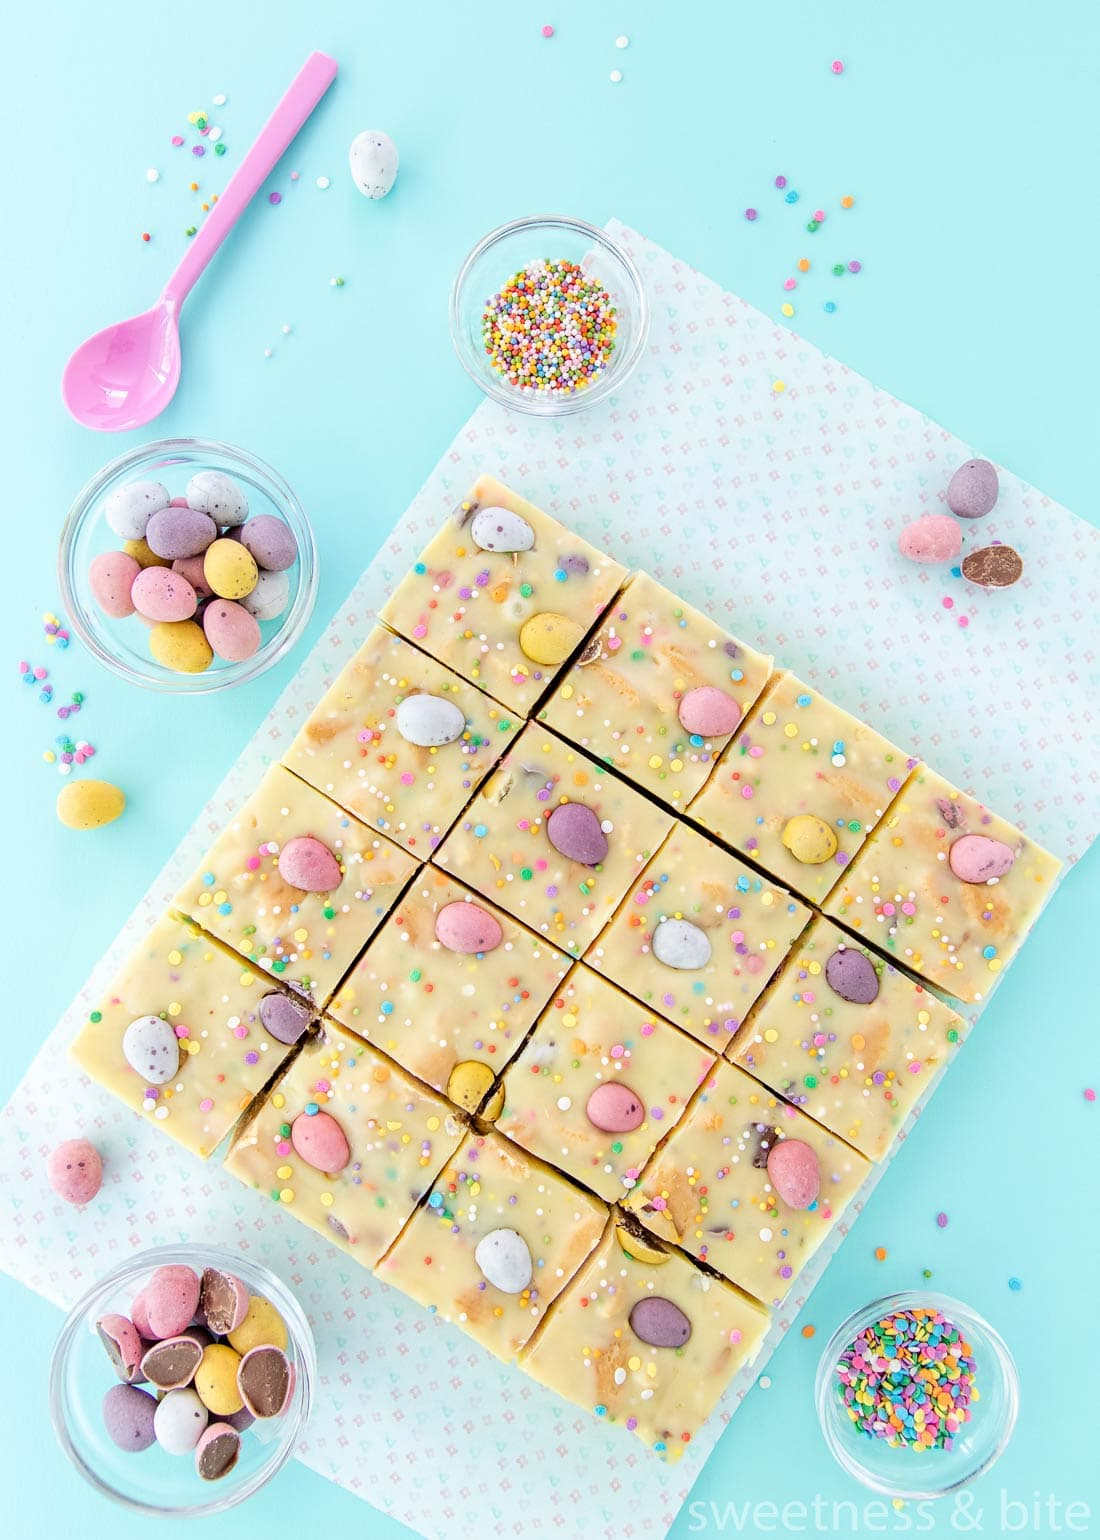 Mini egg fudge slice cut into 16 squares, with sprinkles and mini eggs on a pale blue background.